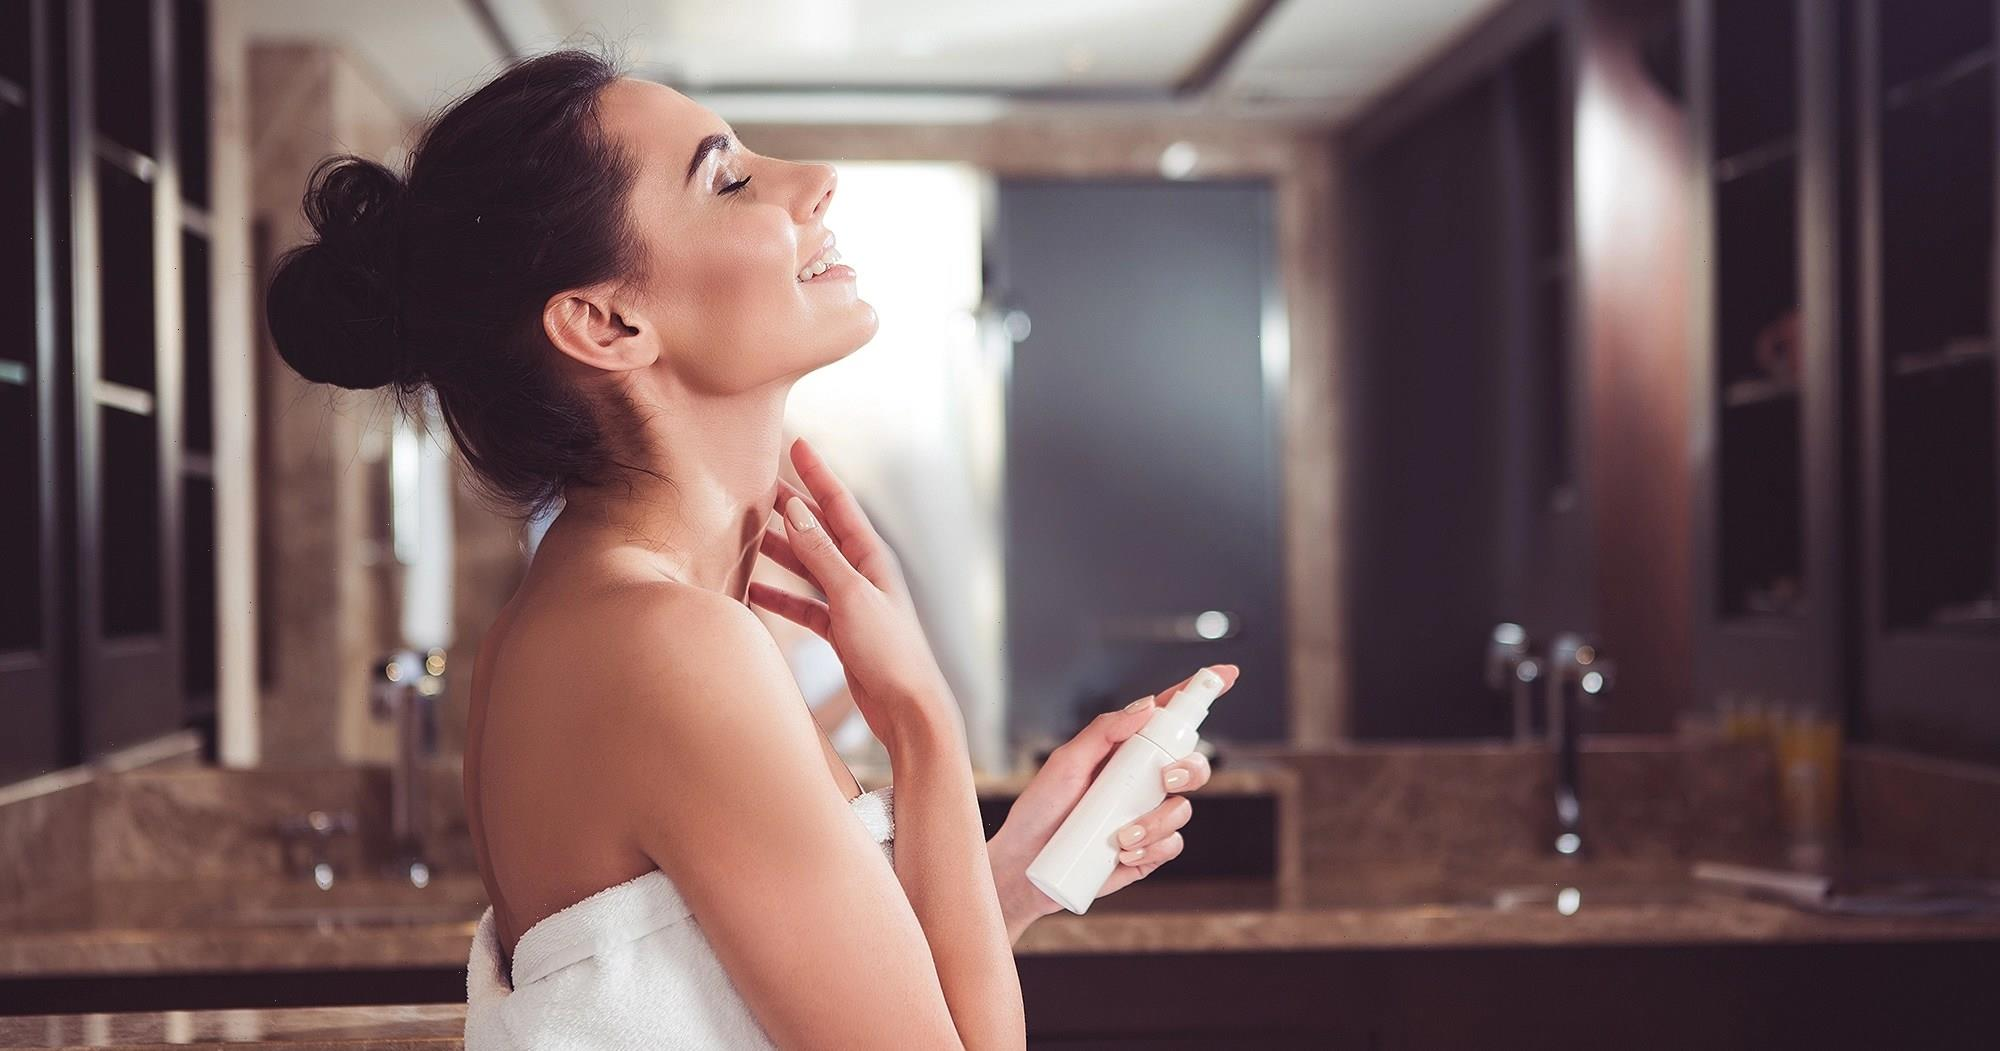 The Best Neck Creams for Firming Up Wrinkled Skin